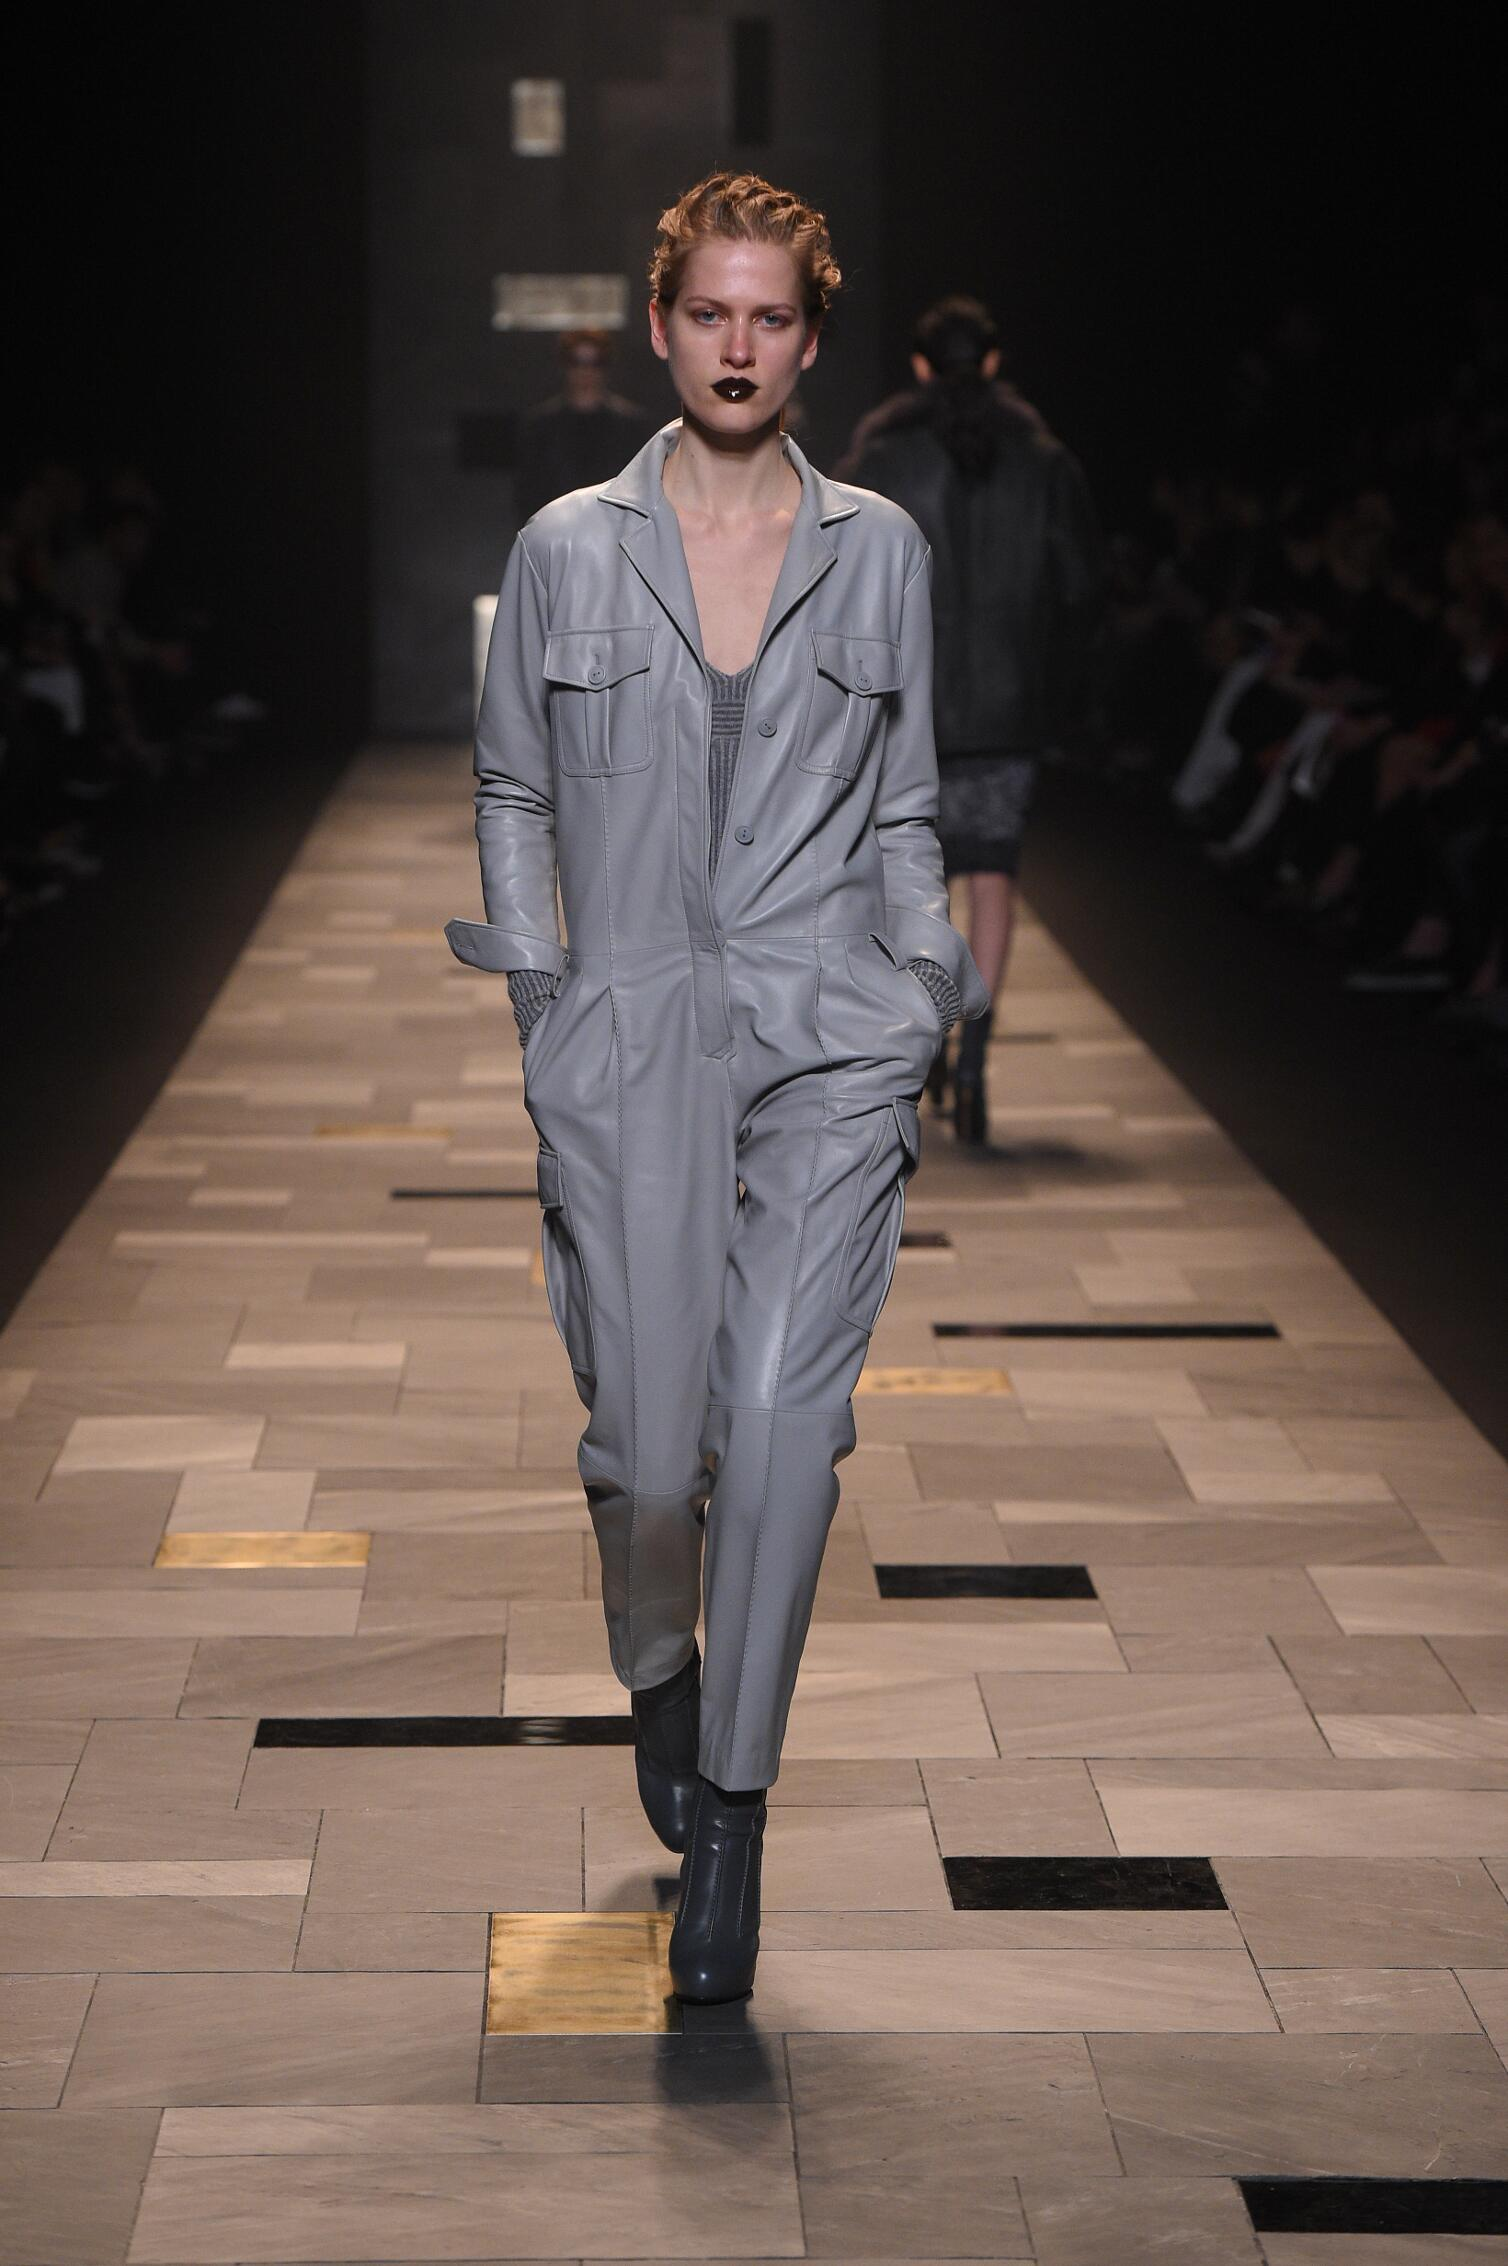 Fashion Woman Model Trussardi Collection Catwalk